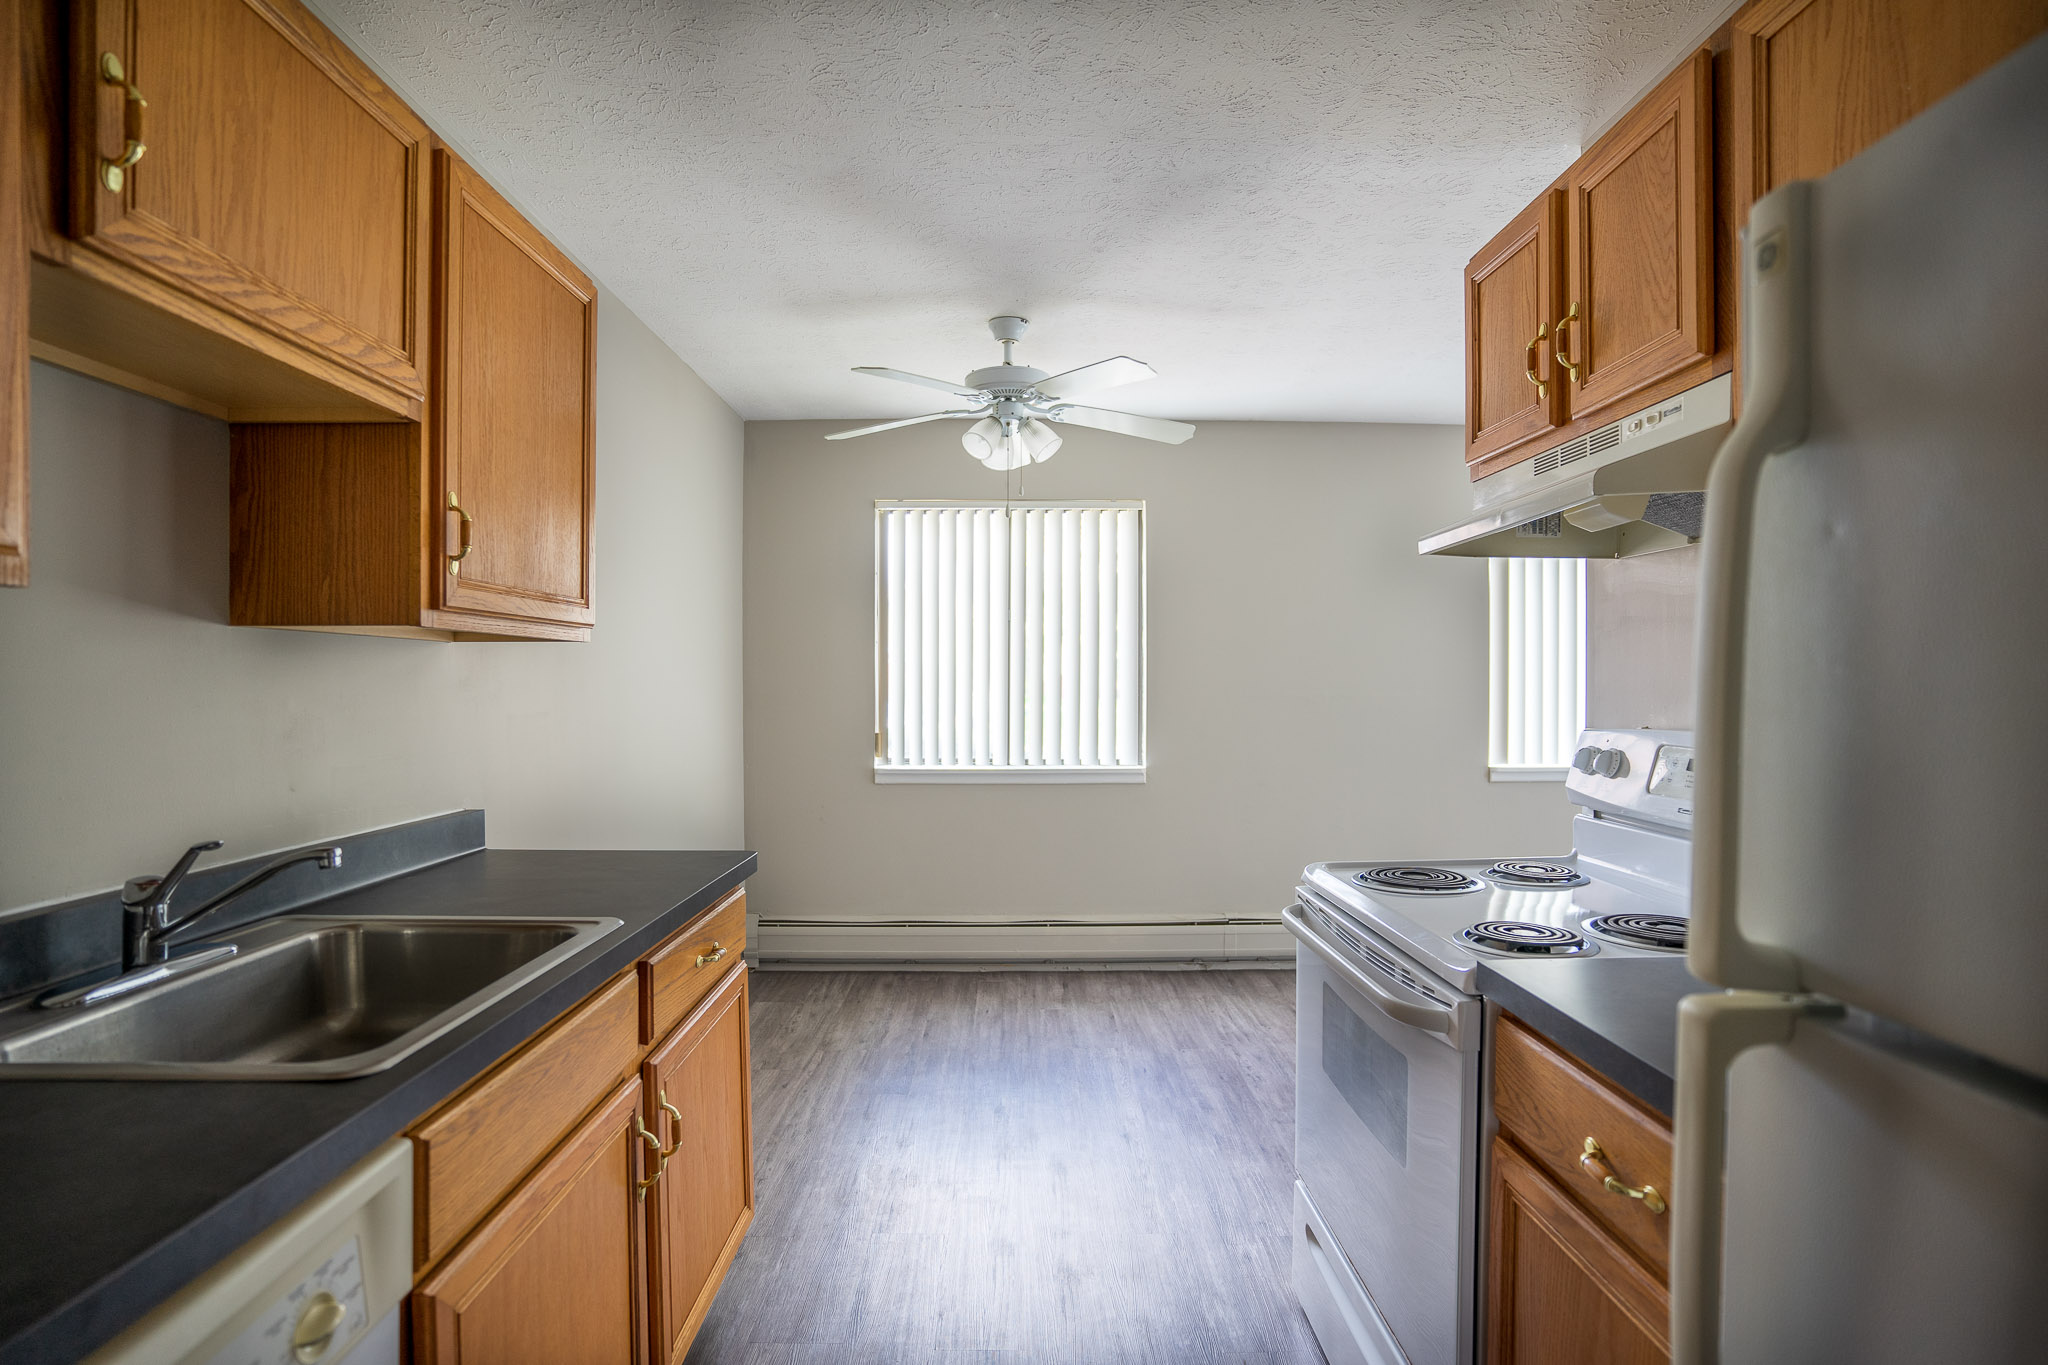 Kitchen at the Little Creek Apartments in Rochester, NY